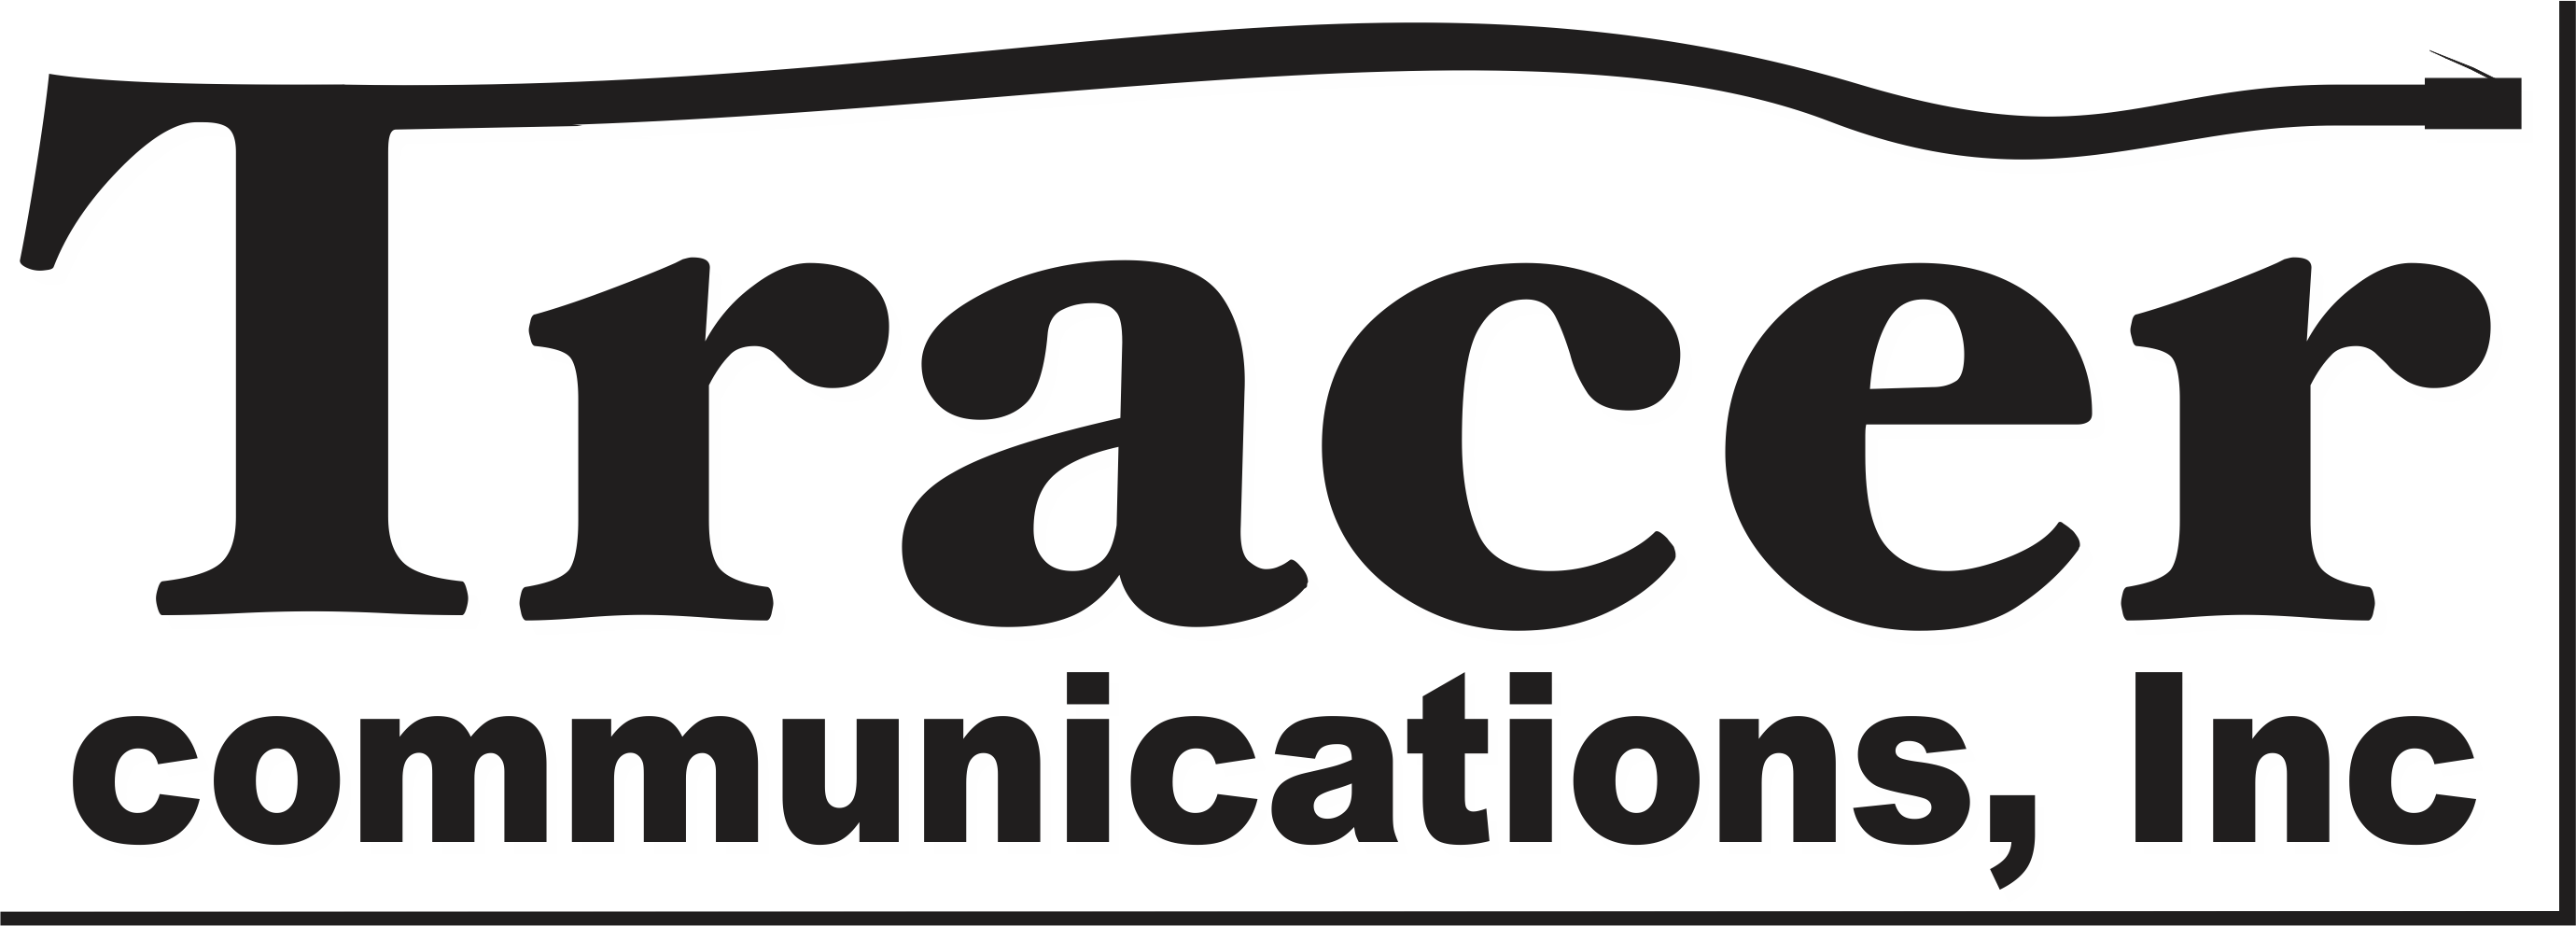 Tracer Communications logo